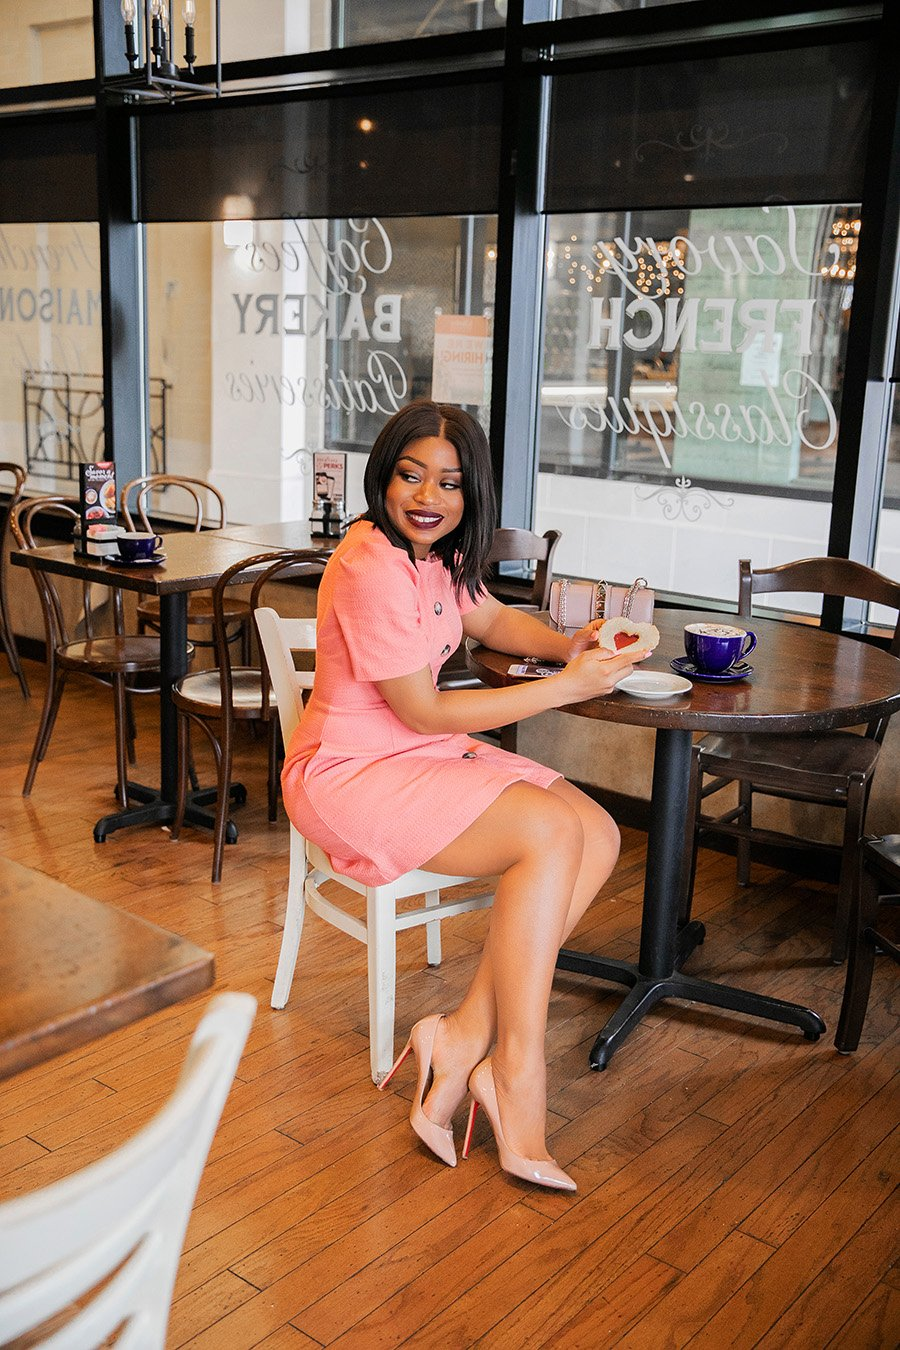 stella-adewunmi-of-jadore-fashion-blog-shares-5-tips-to-work-from-home-with-kids-around